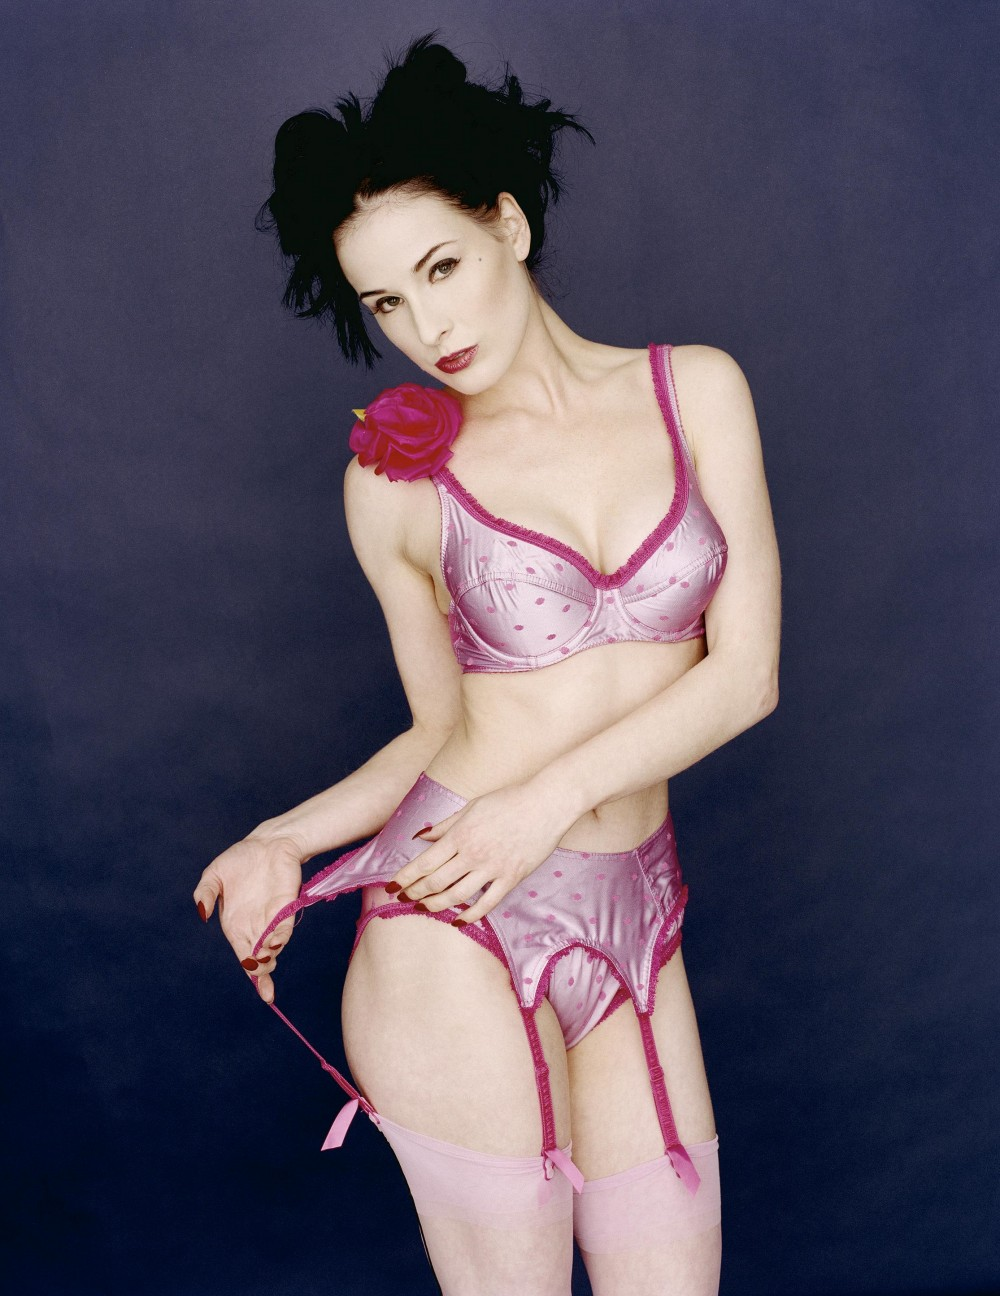 ... Picture Gallery: Hollywood Actress Dita Von Teese Hot Pics Gallery Dita Von Teese